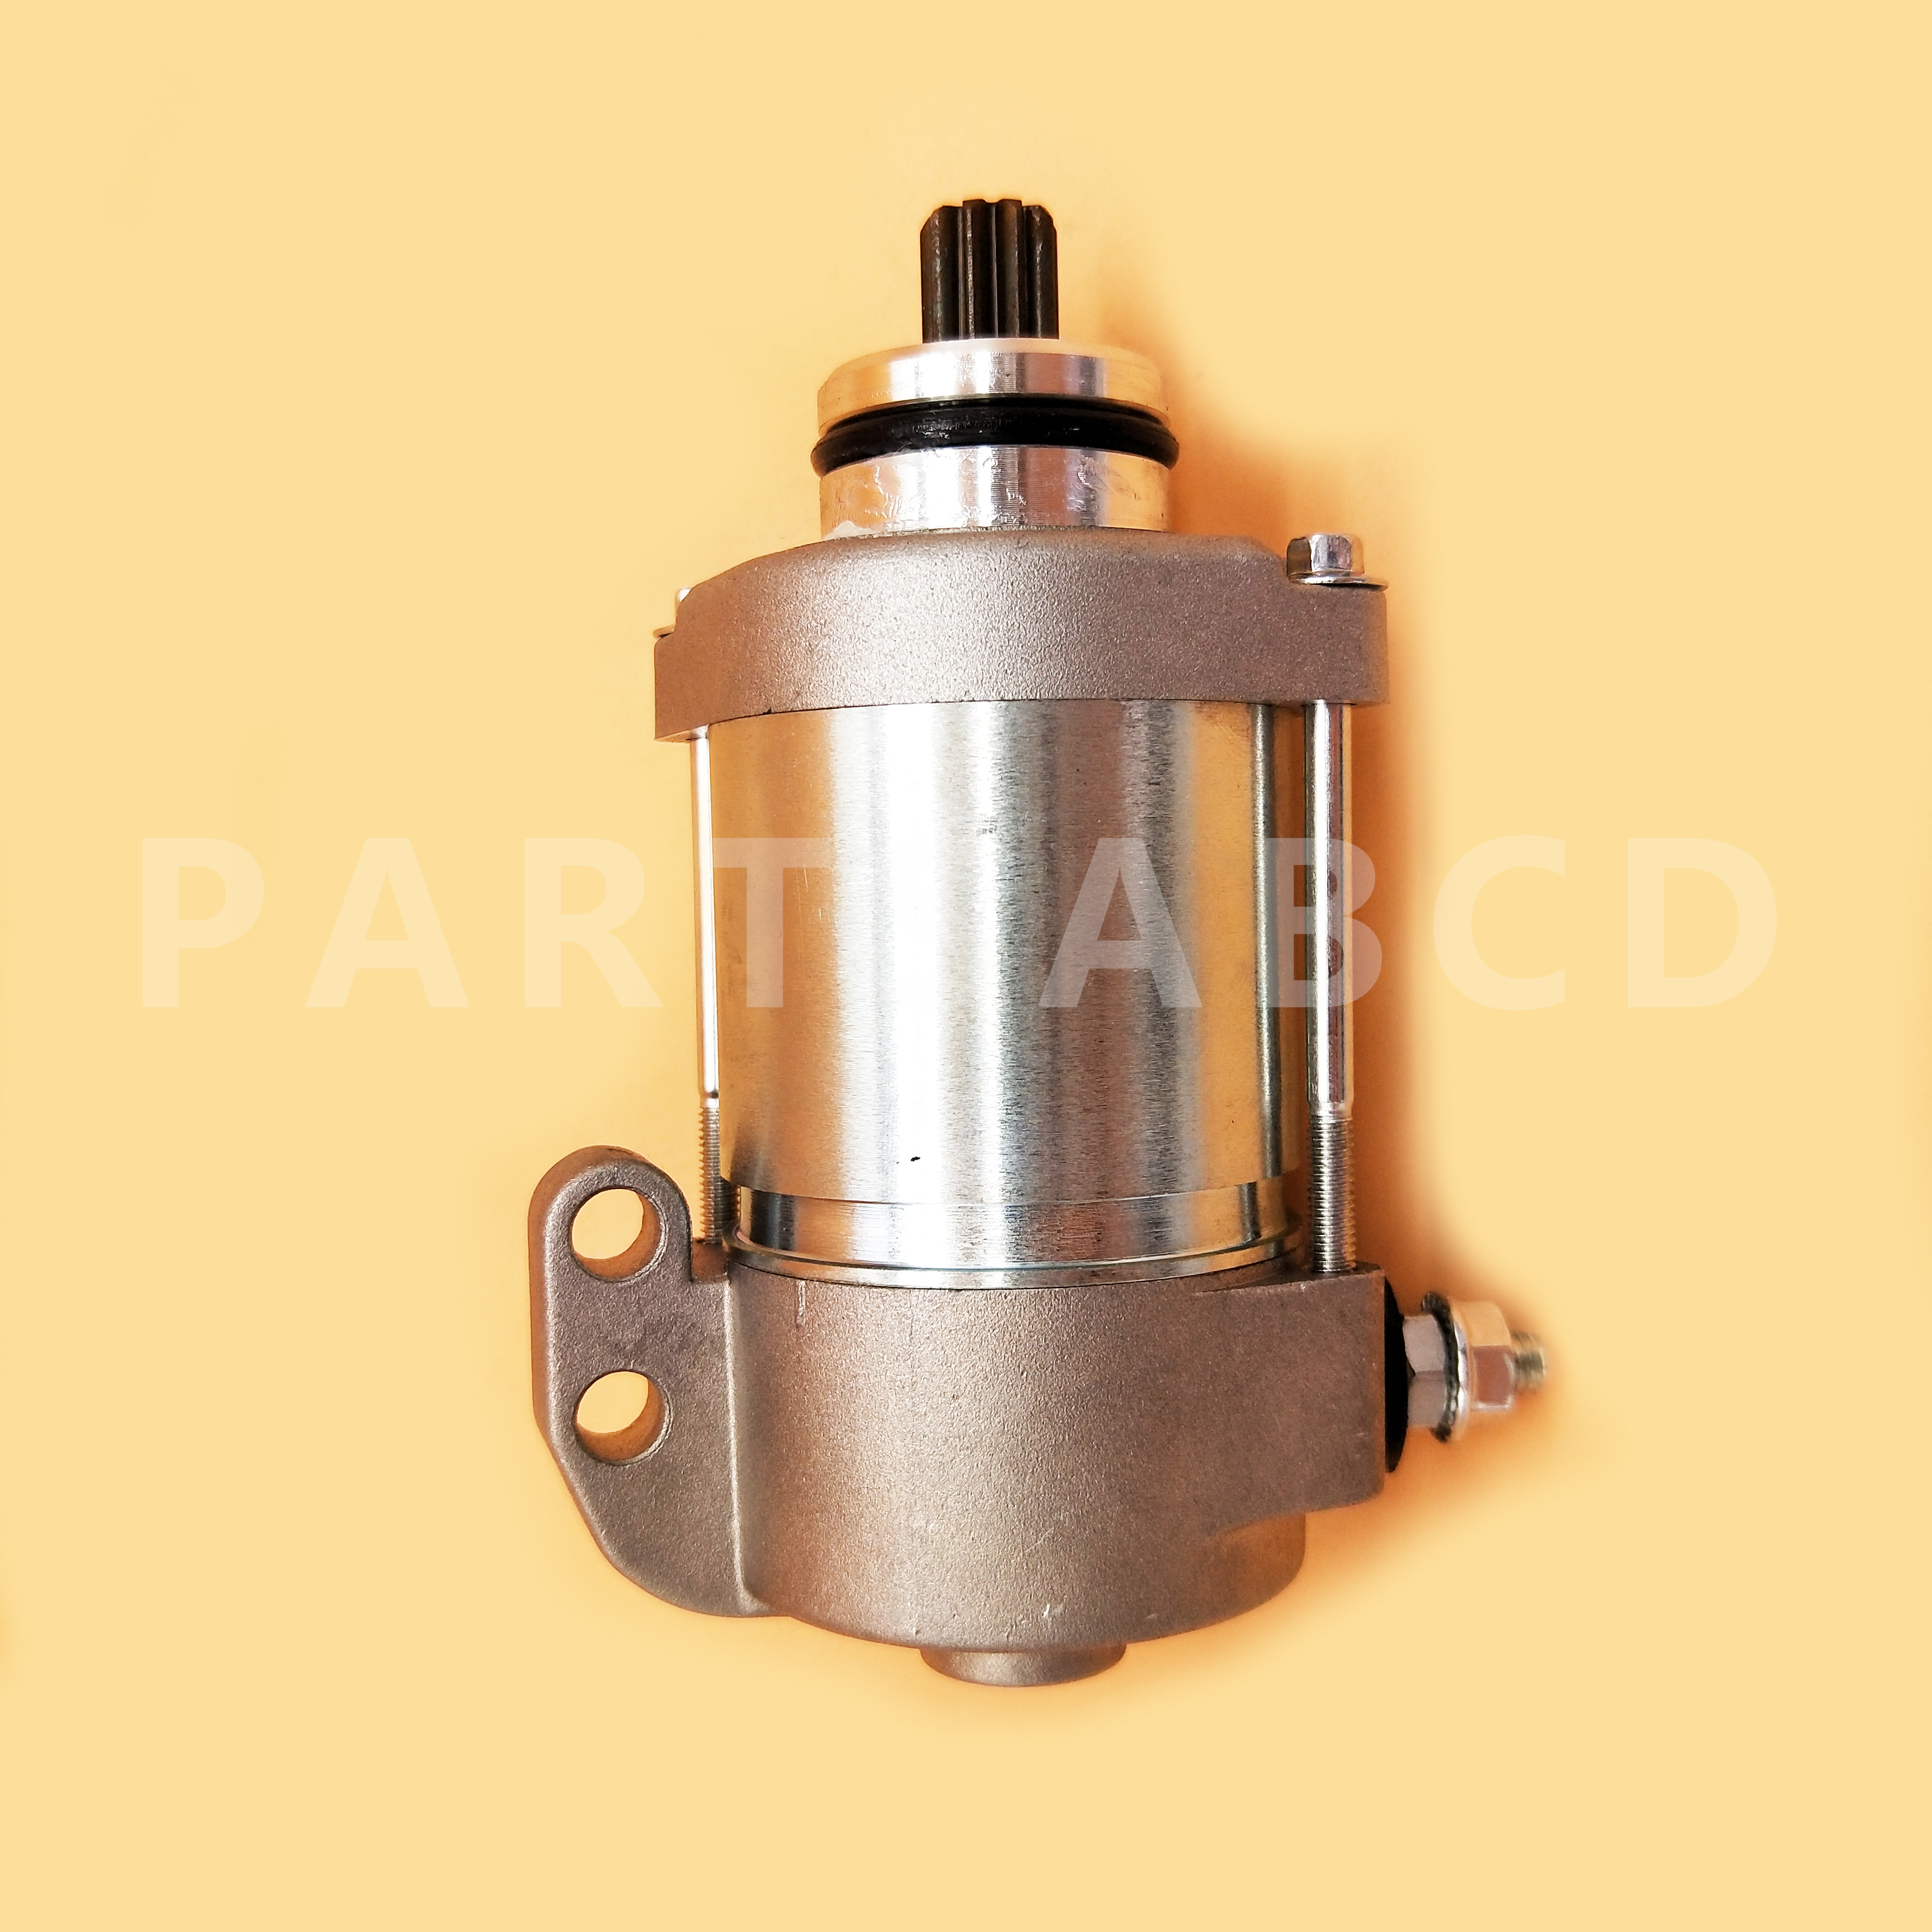 9T Starter Motor For KTM Motorcycle 200 250 300 EXC XC XCW 55140001100 410 Watt(China)